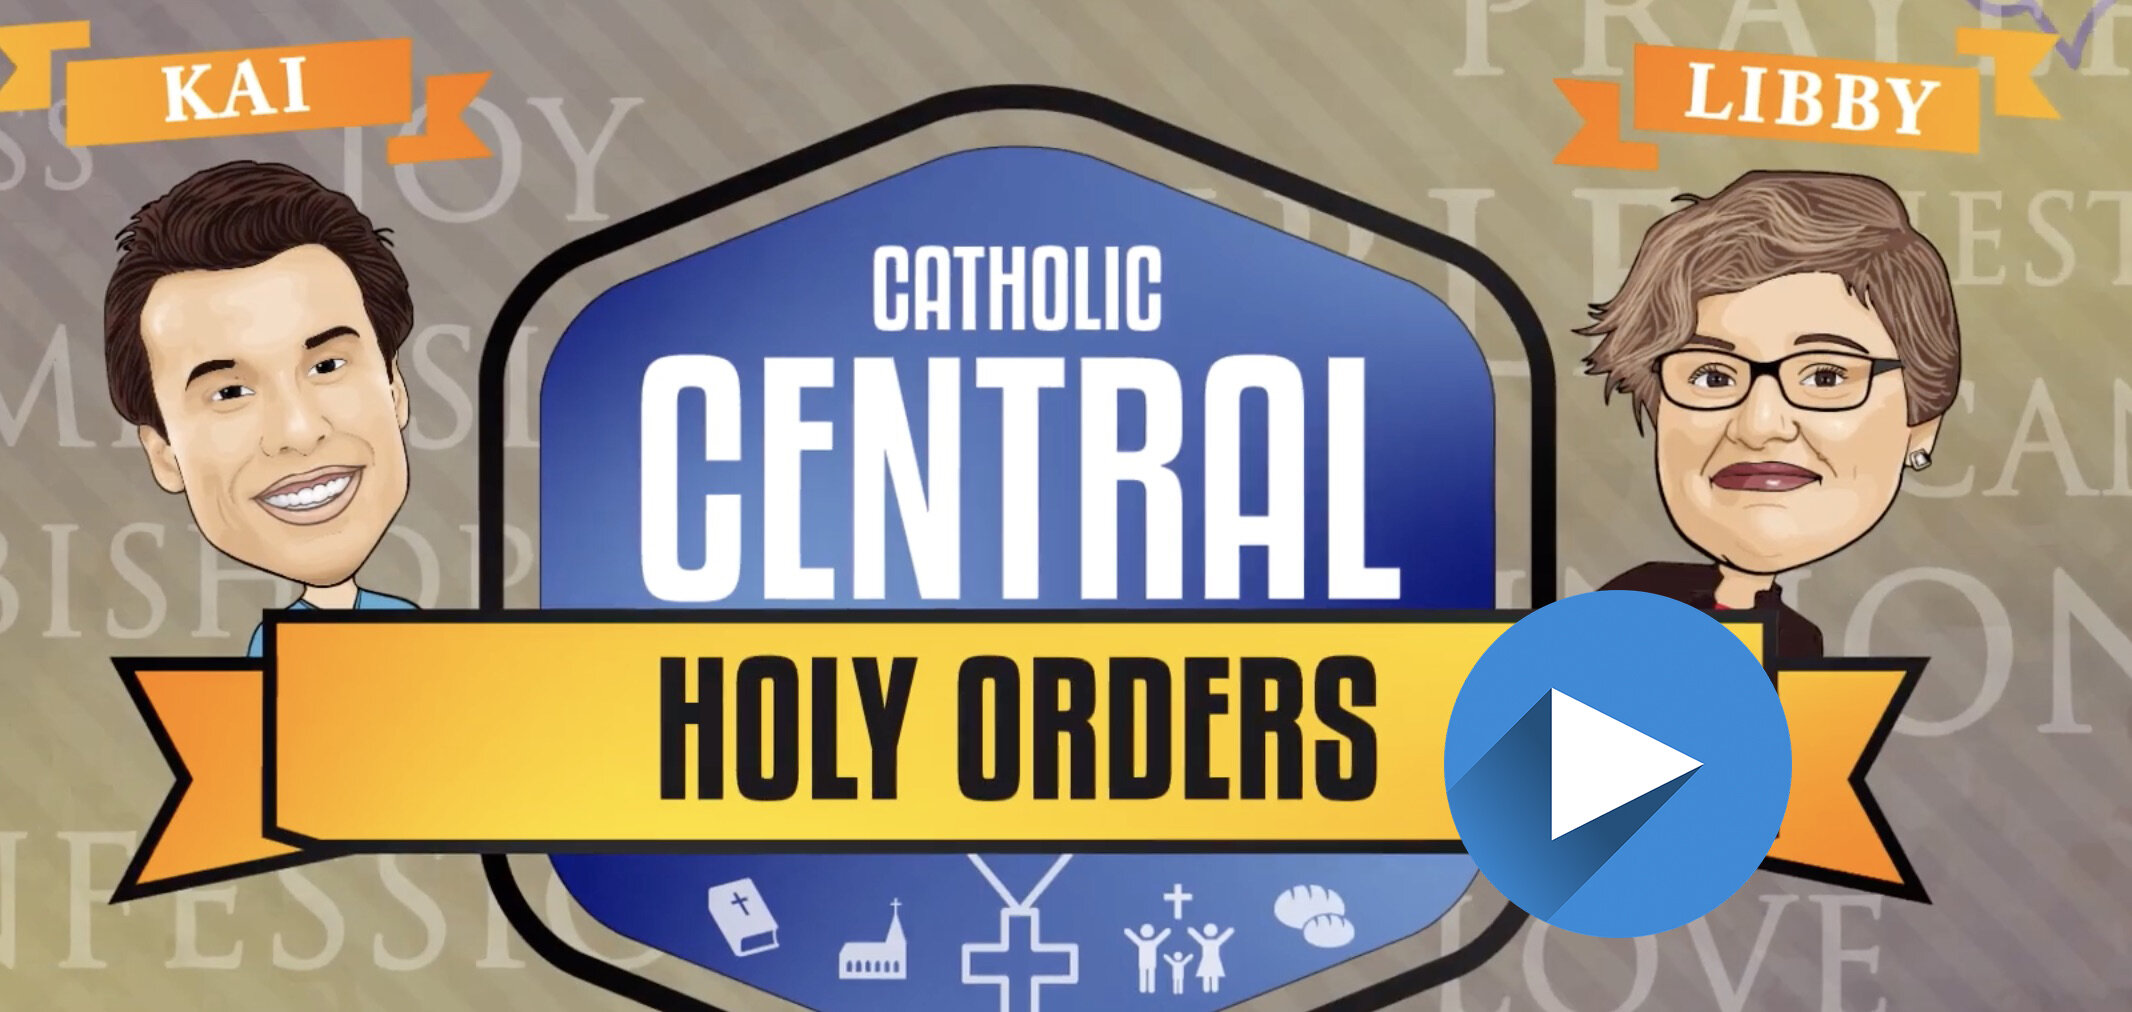 HOLY ORDERS VIDEO COVER with arrow.jpg